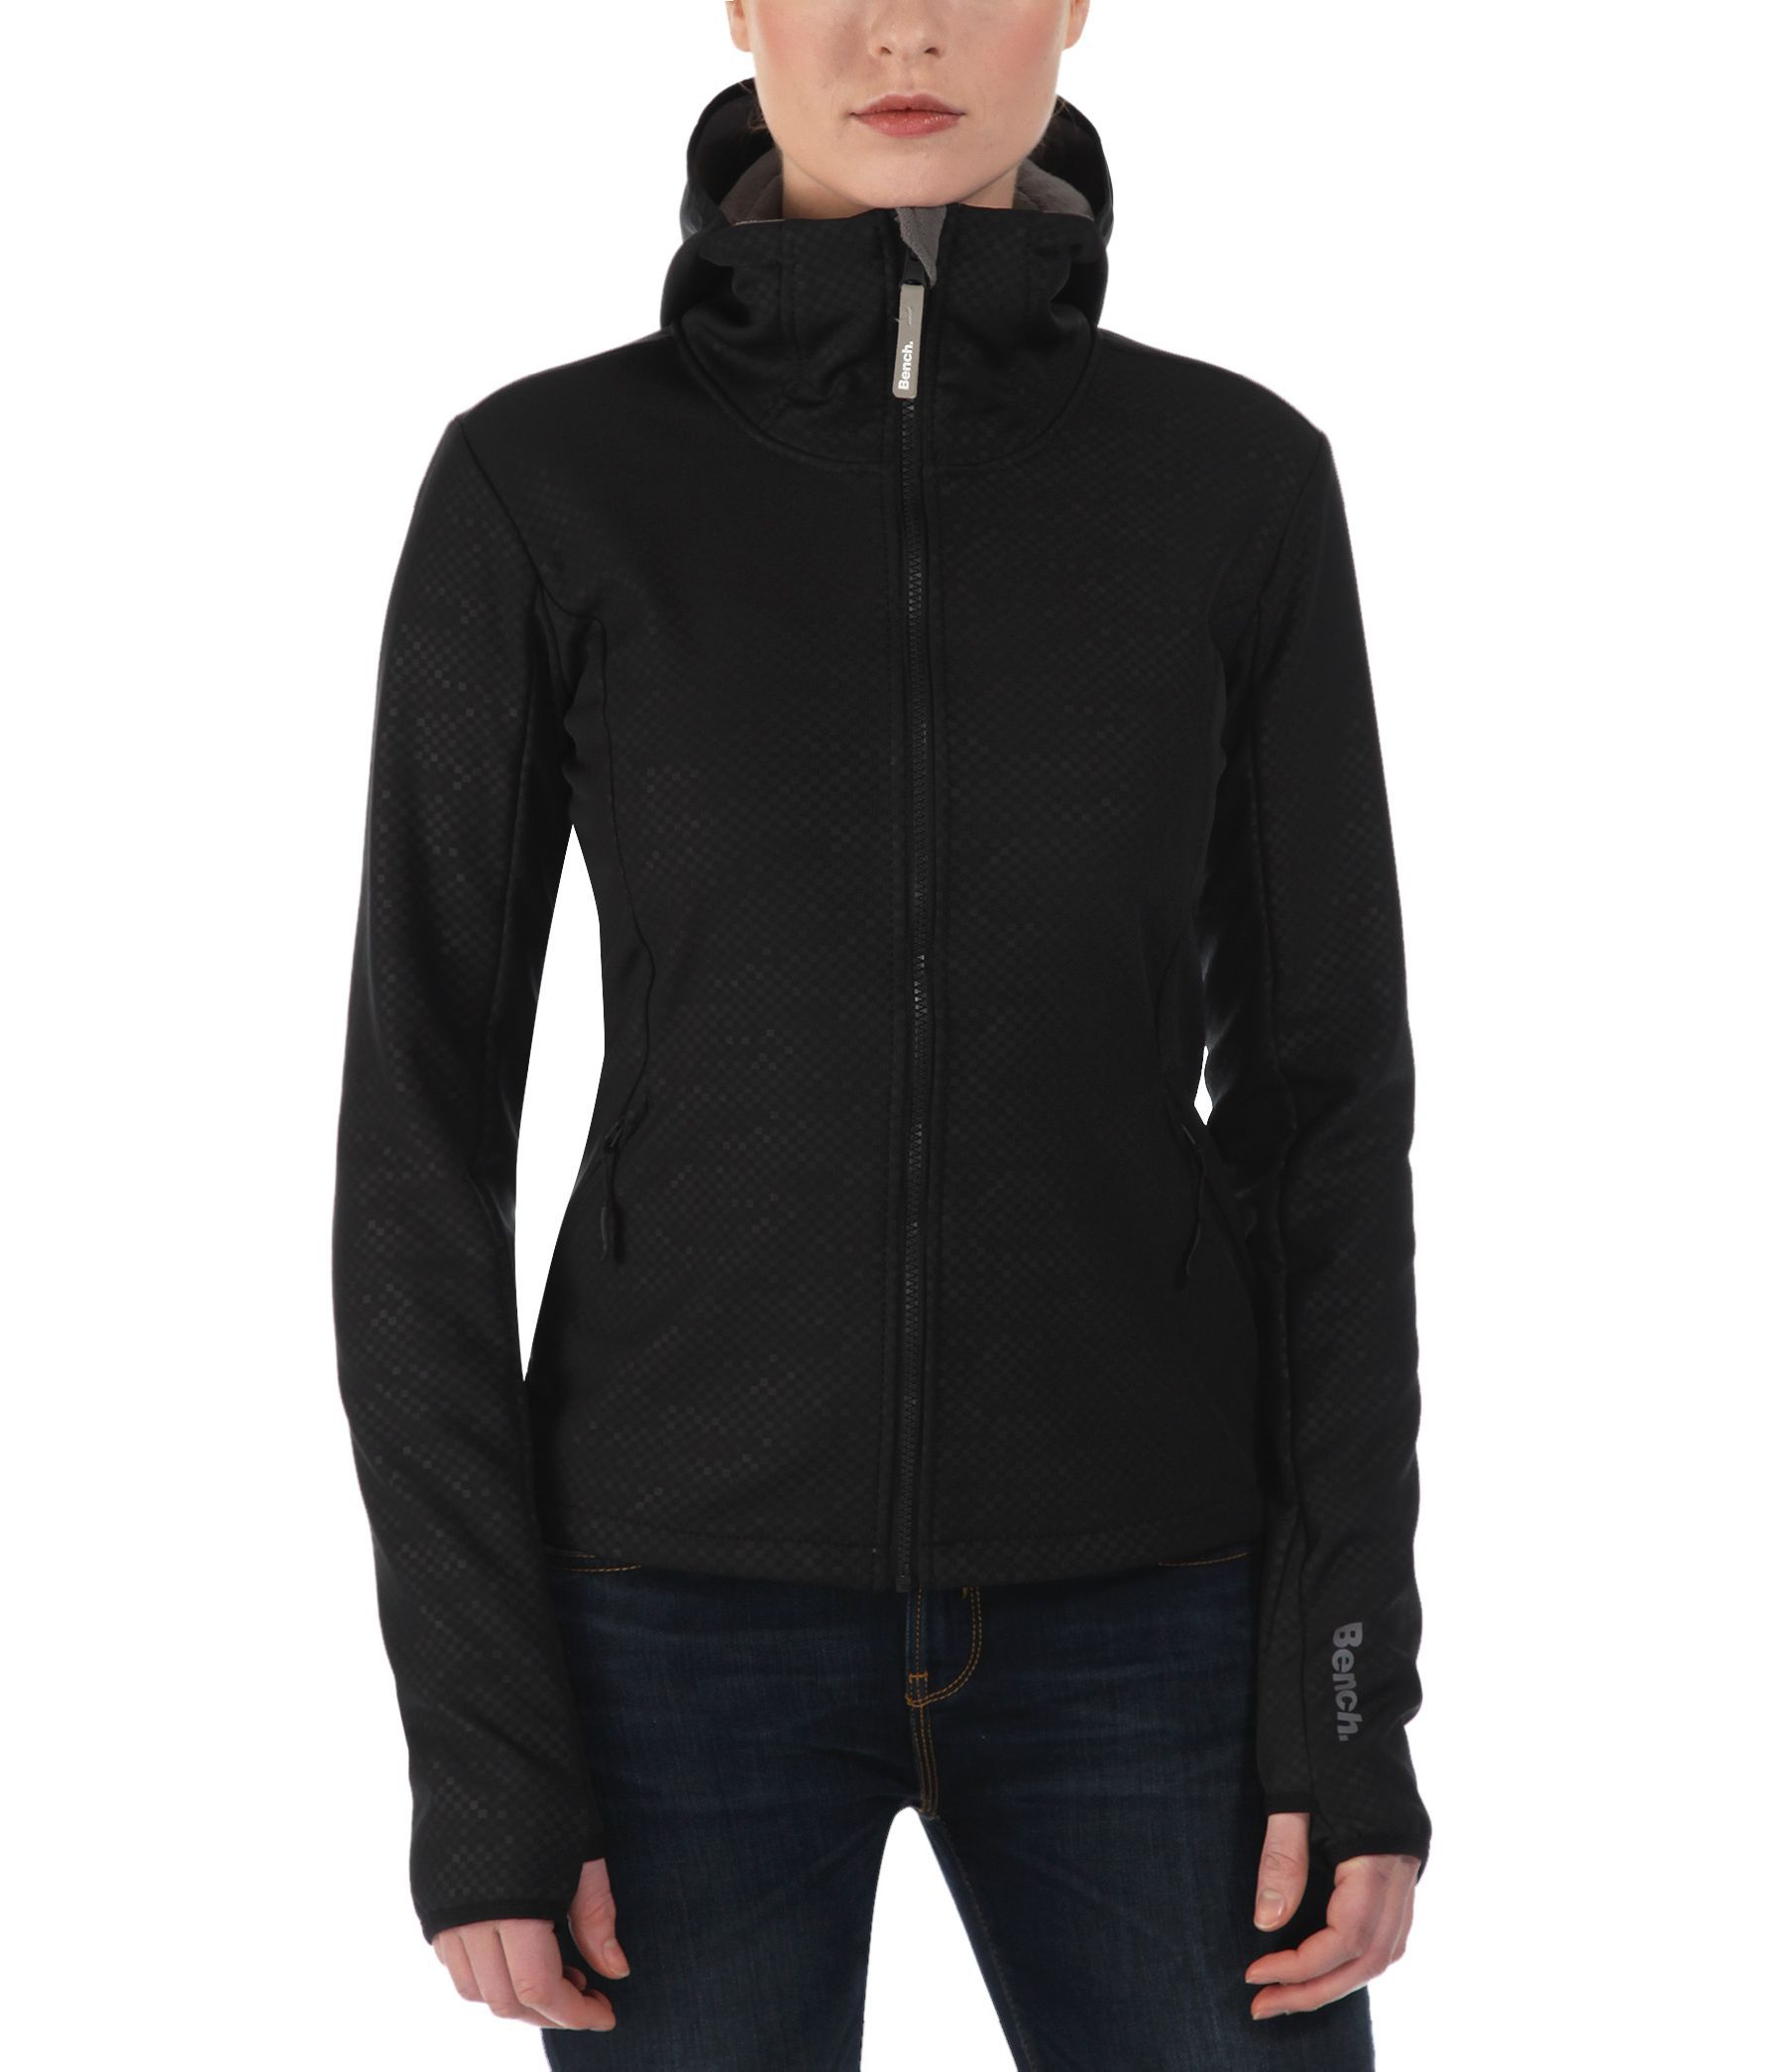 Bench Competence B Lightweight Shell Jacket In Black Lyst